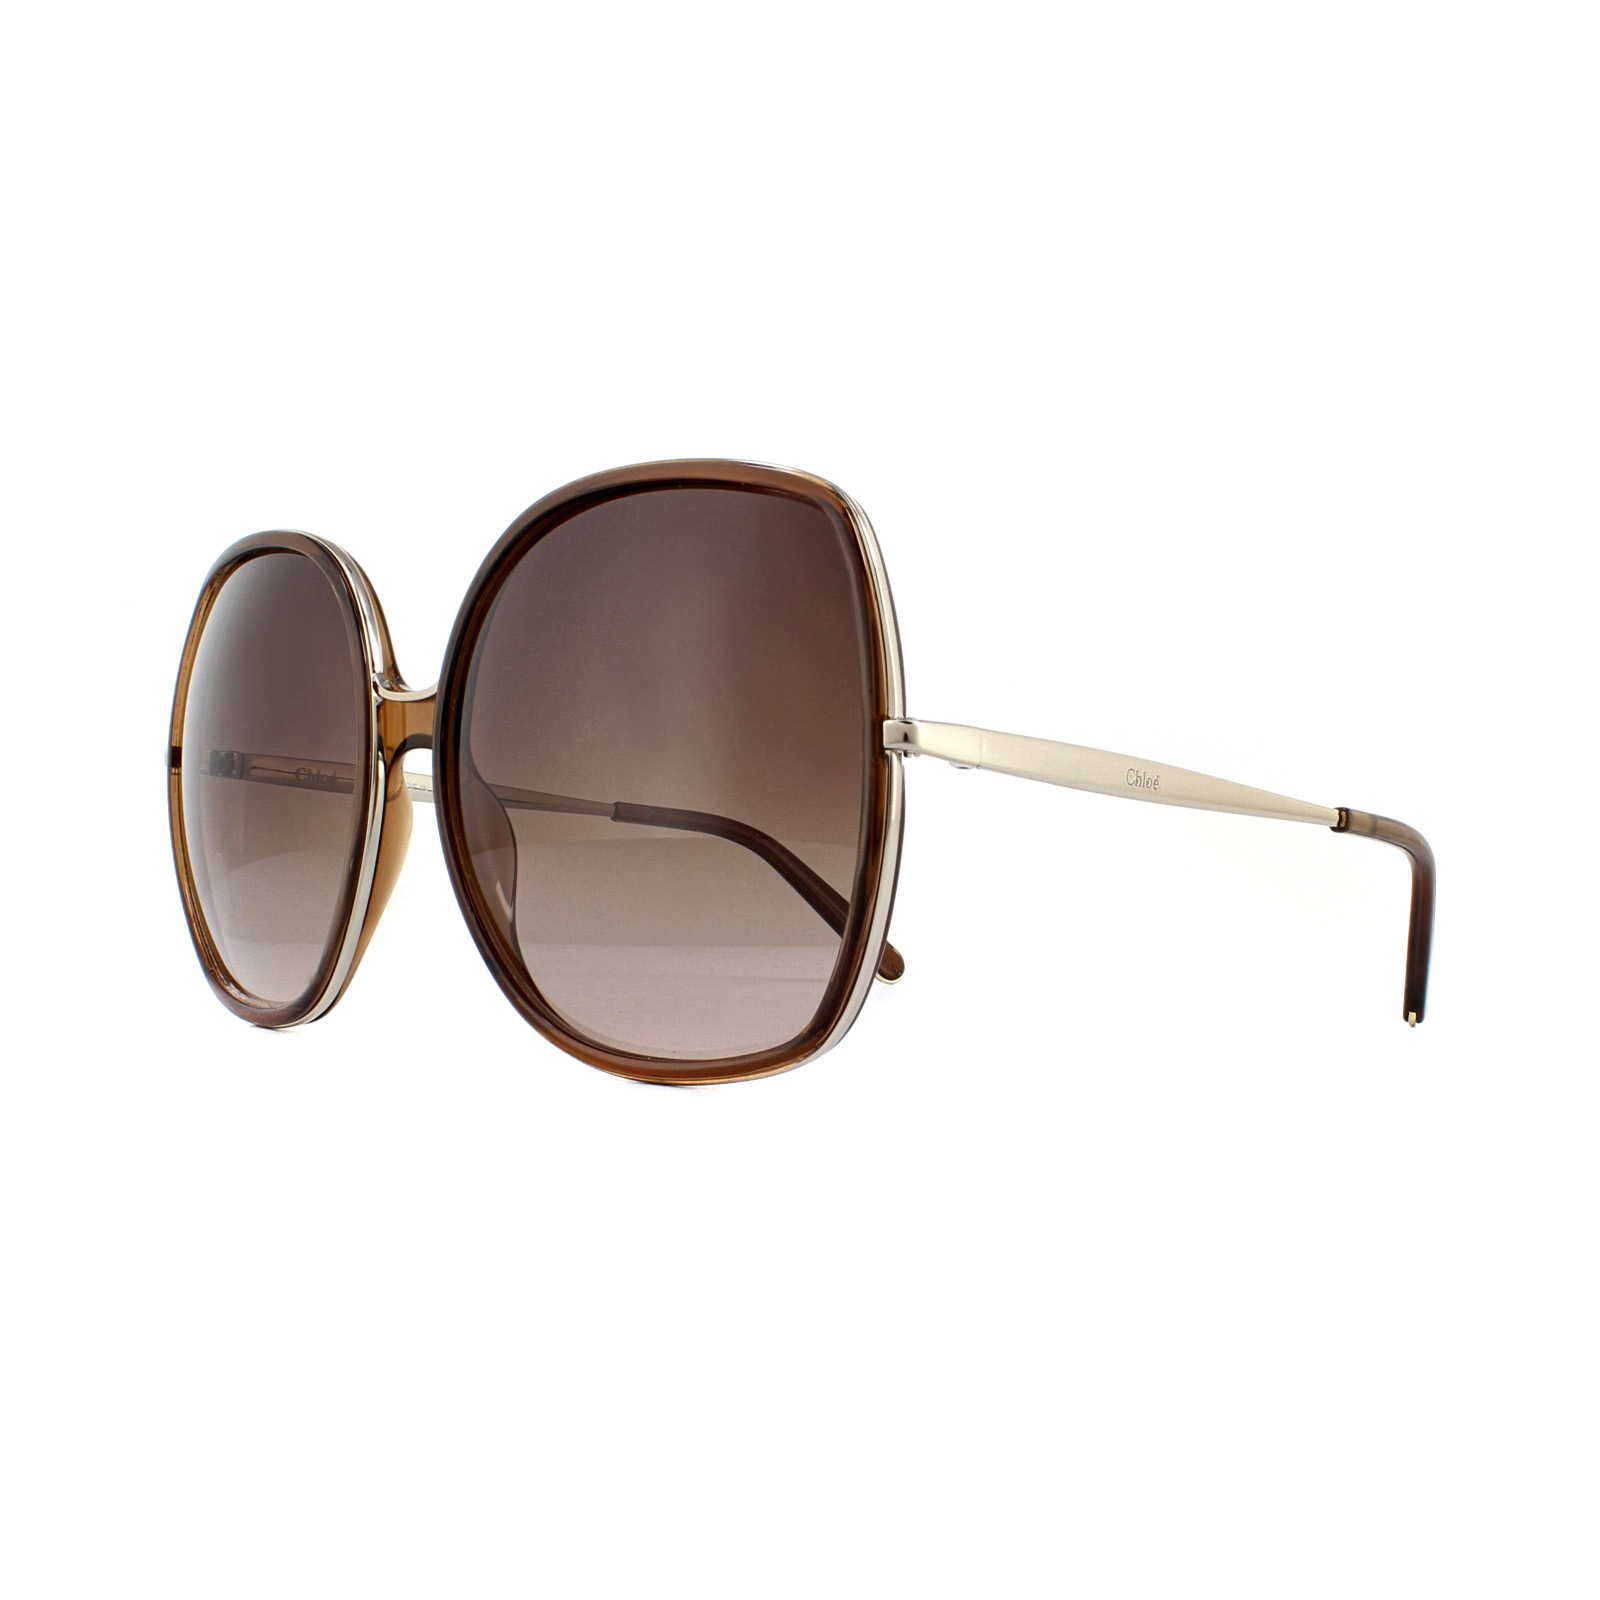 Chloe CE725S 290 - Nude Brown Gradient Sunglasses for Women